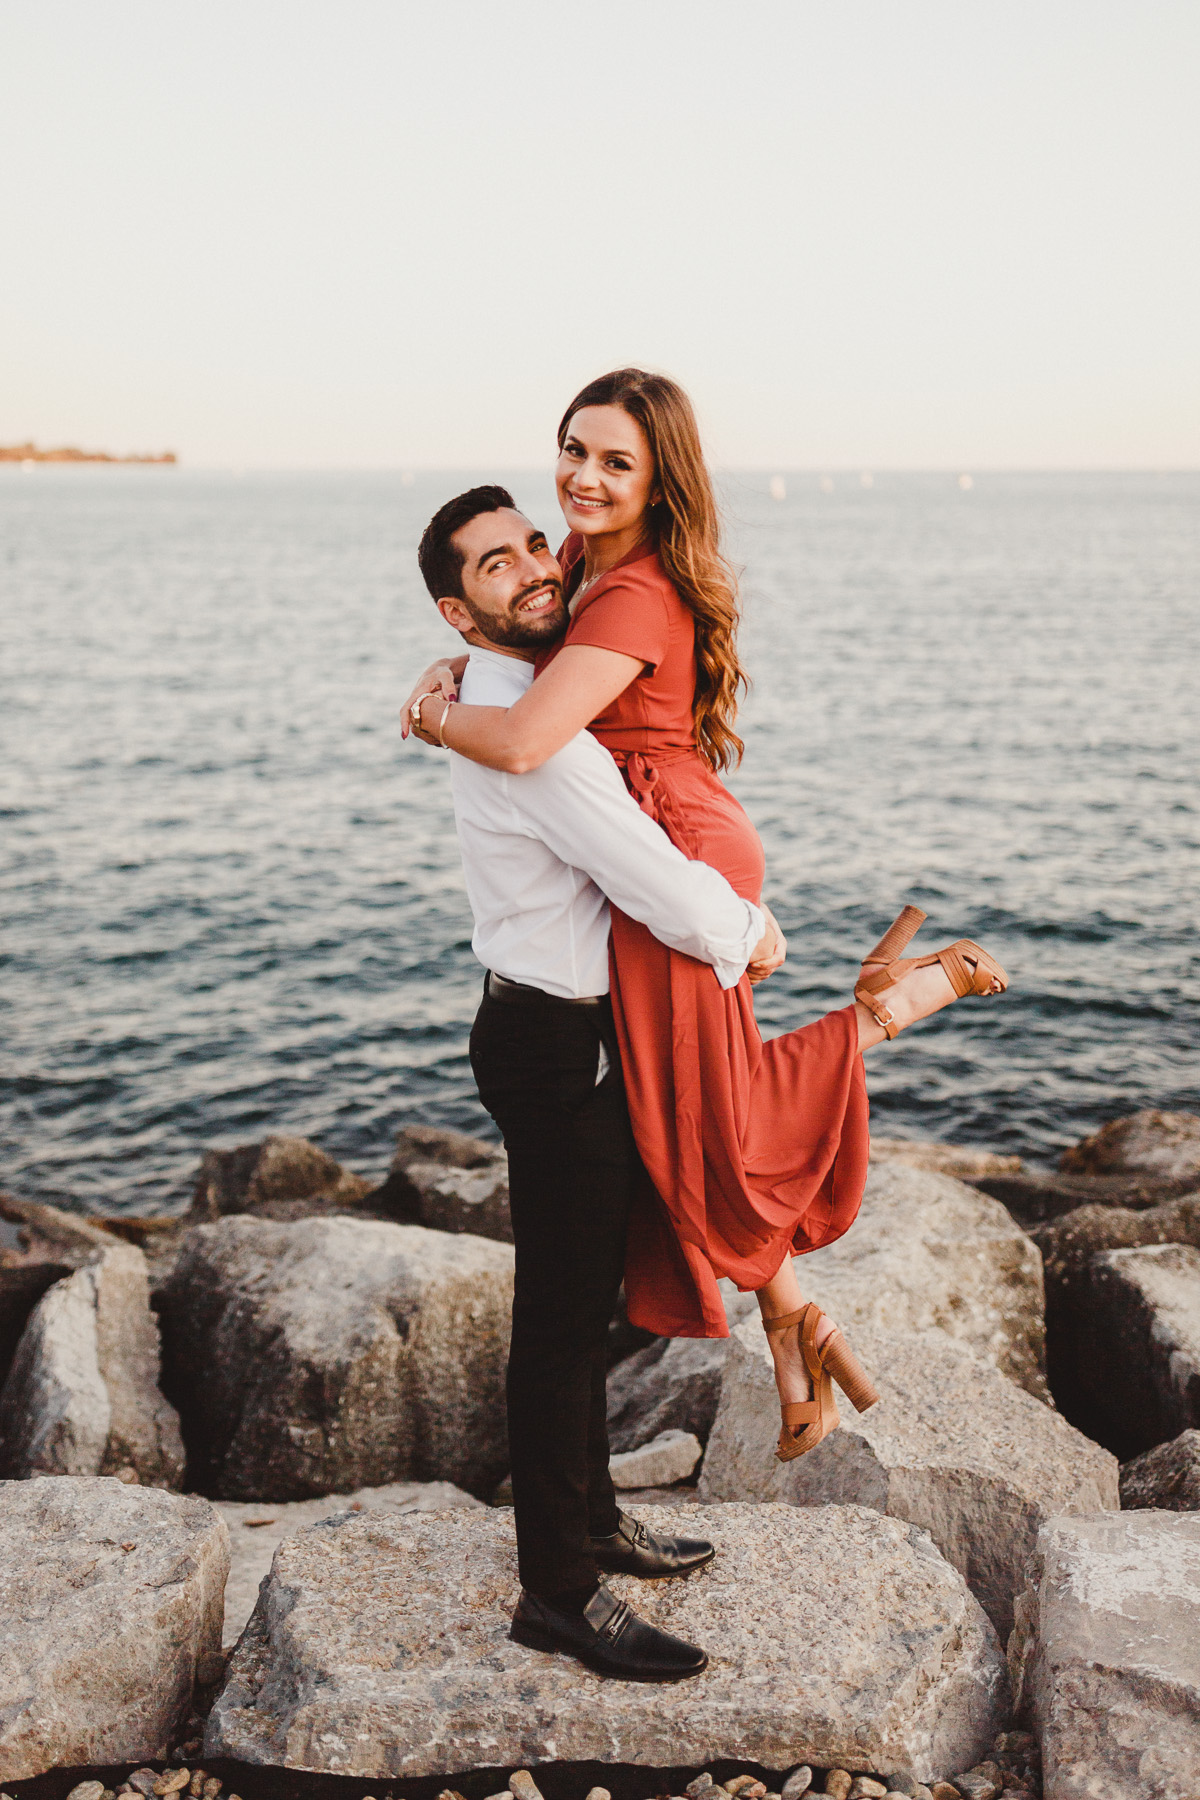 Trillium Park Toronto Engagement Photography by Top Toronto Wedding Photographer Avangard Photography